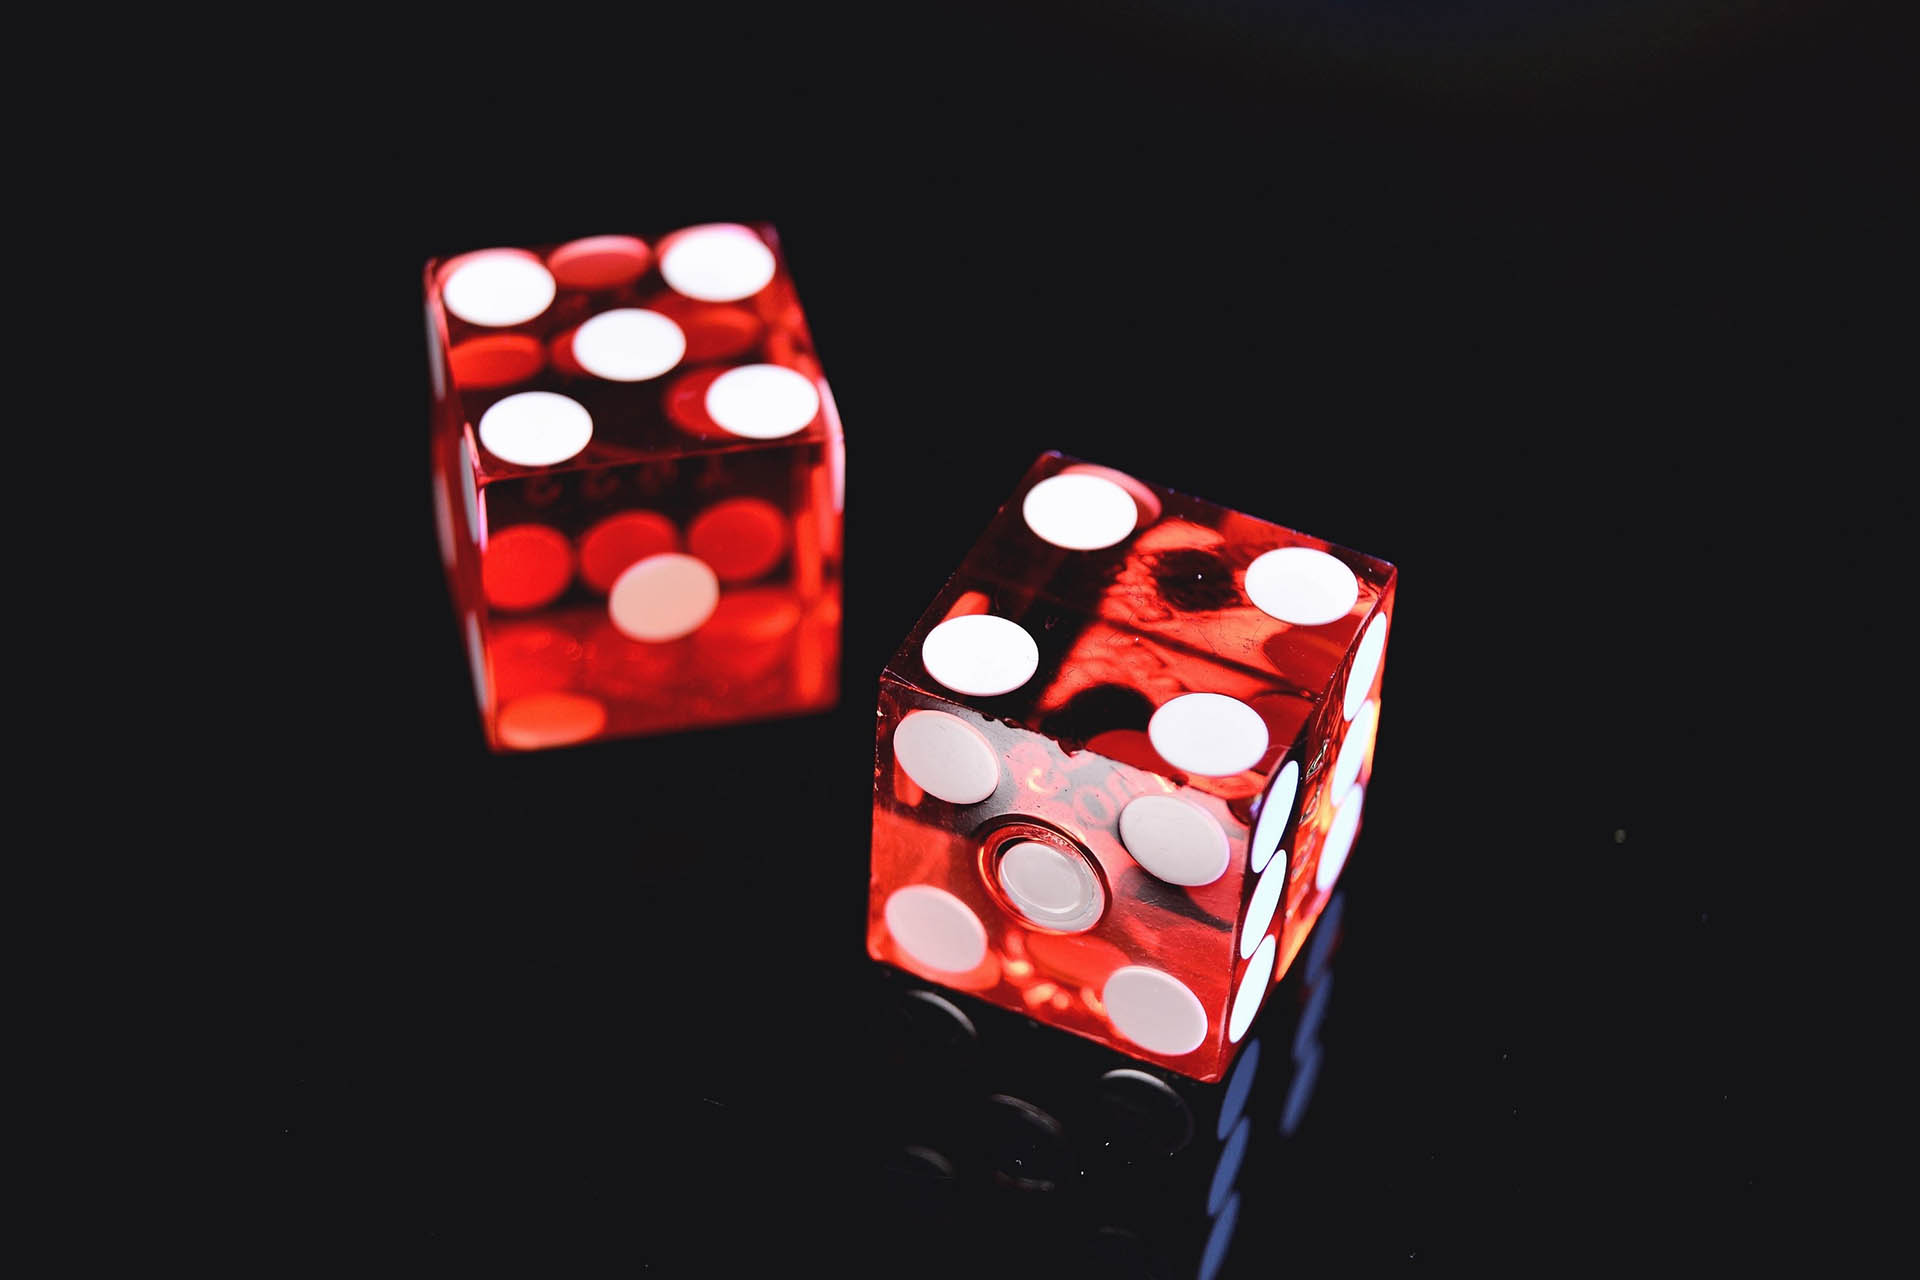 t2informatik Blog: And he does play dice...